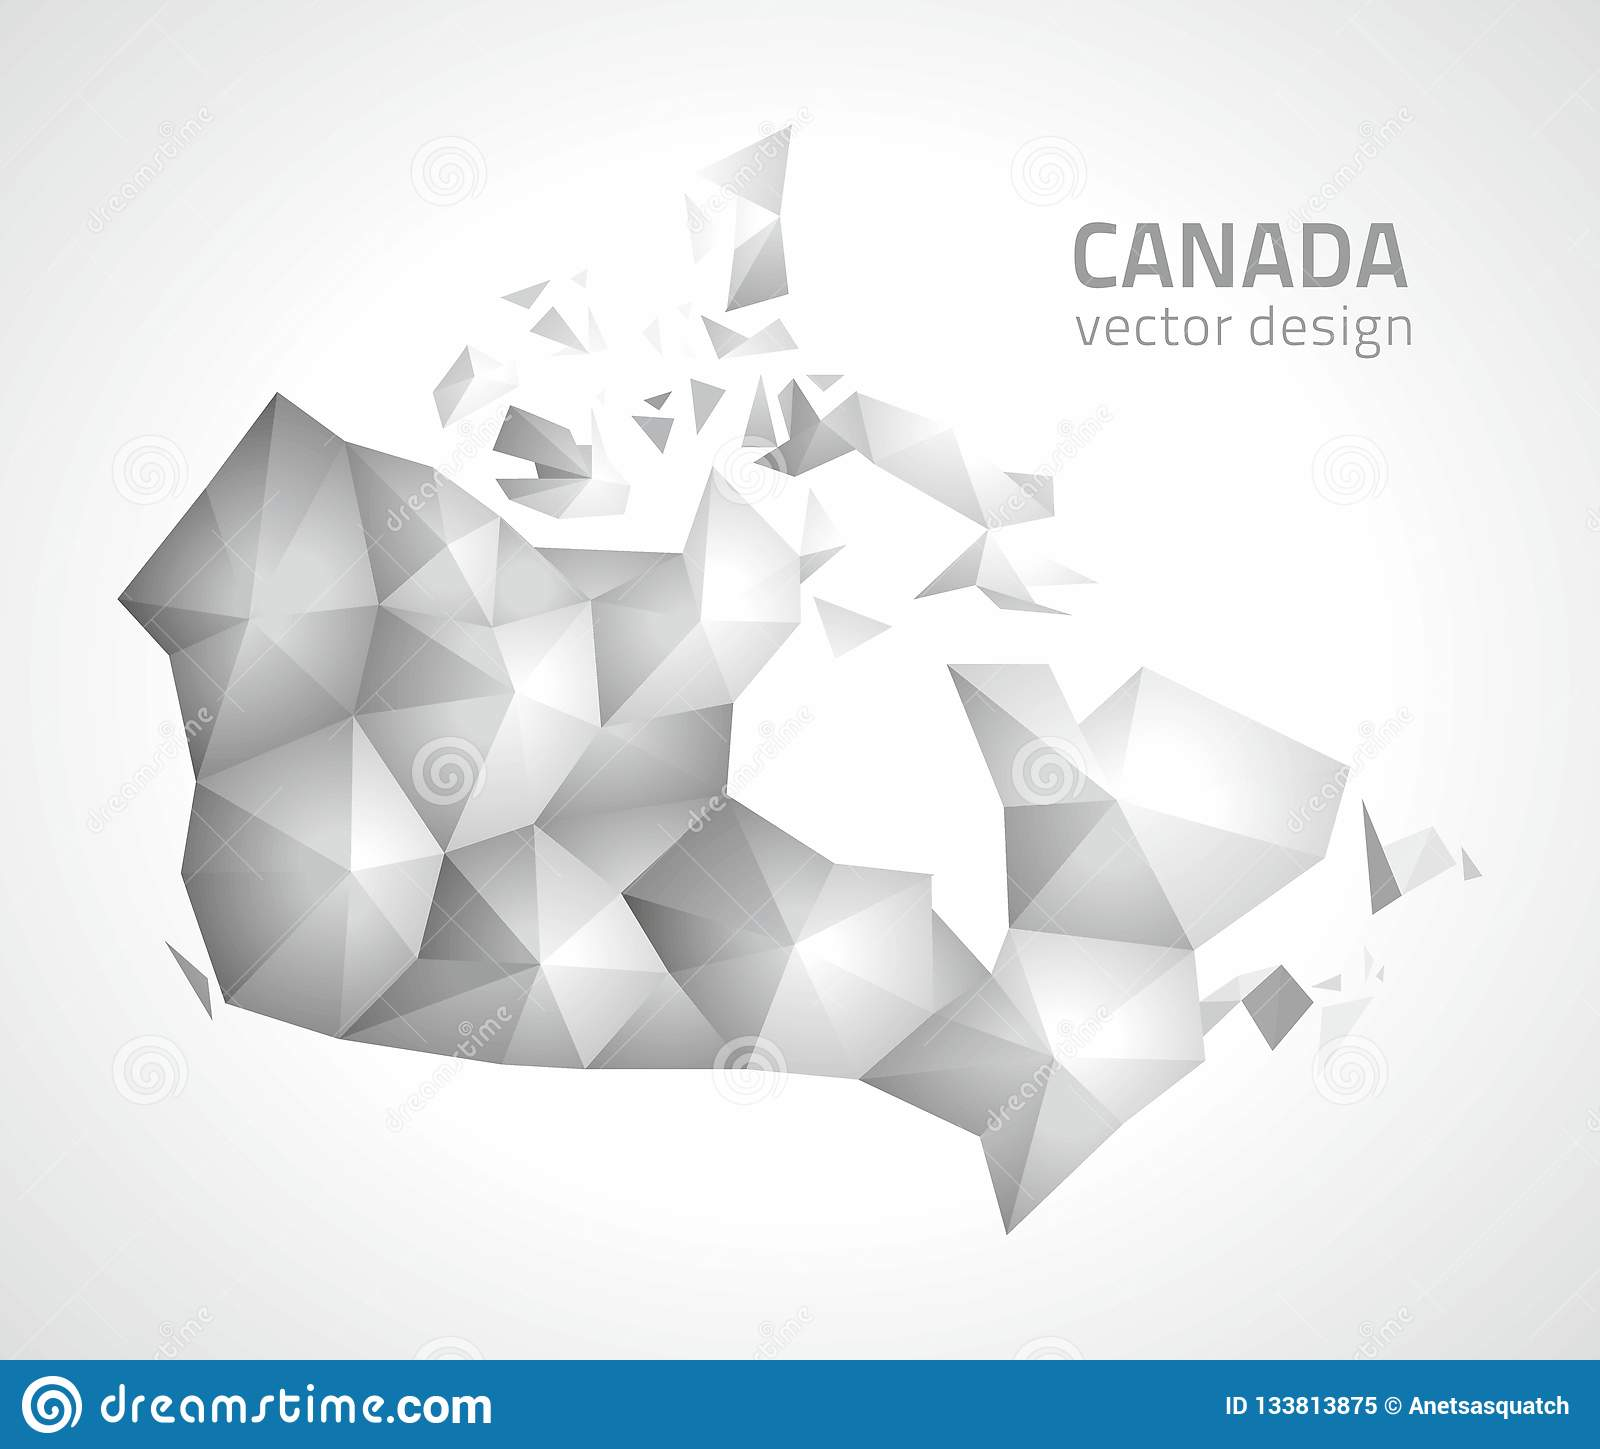 Canada Vector Grey And Silver Polygonal Mosaic 3d Map Stock ...